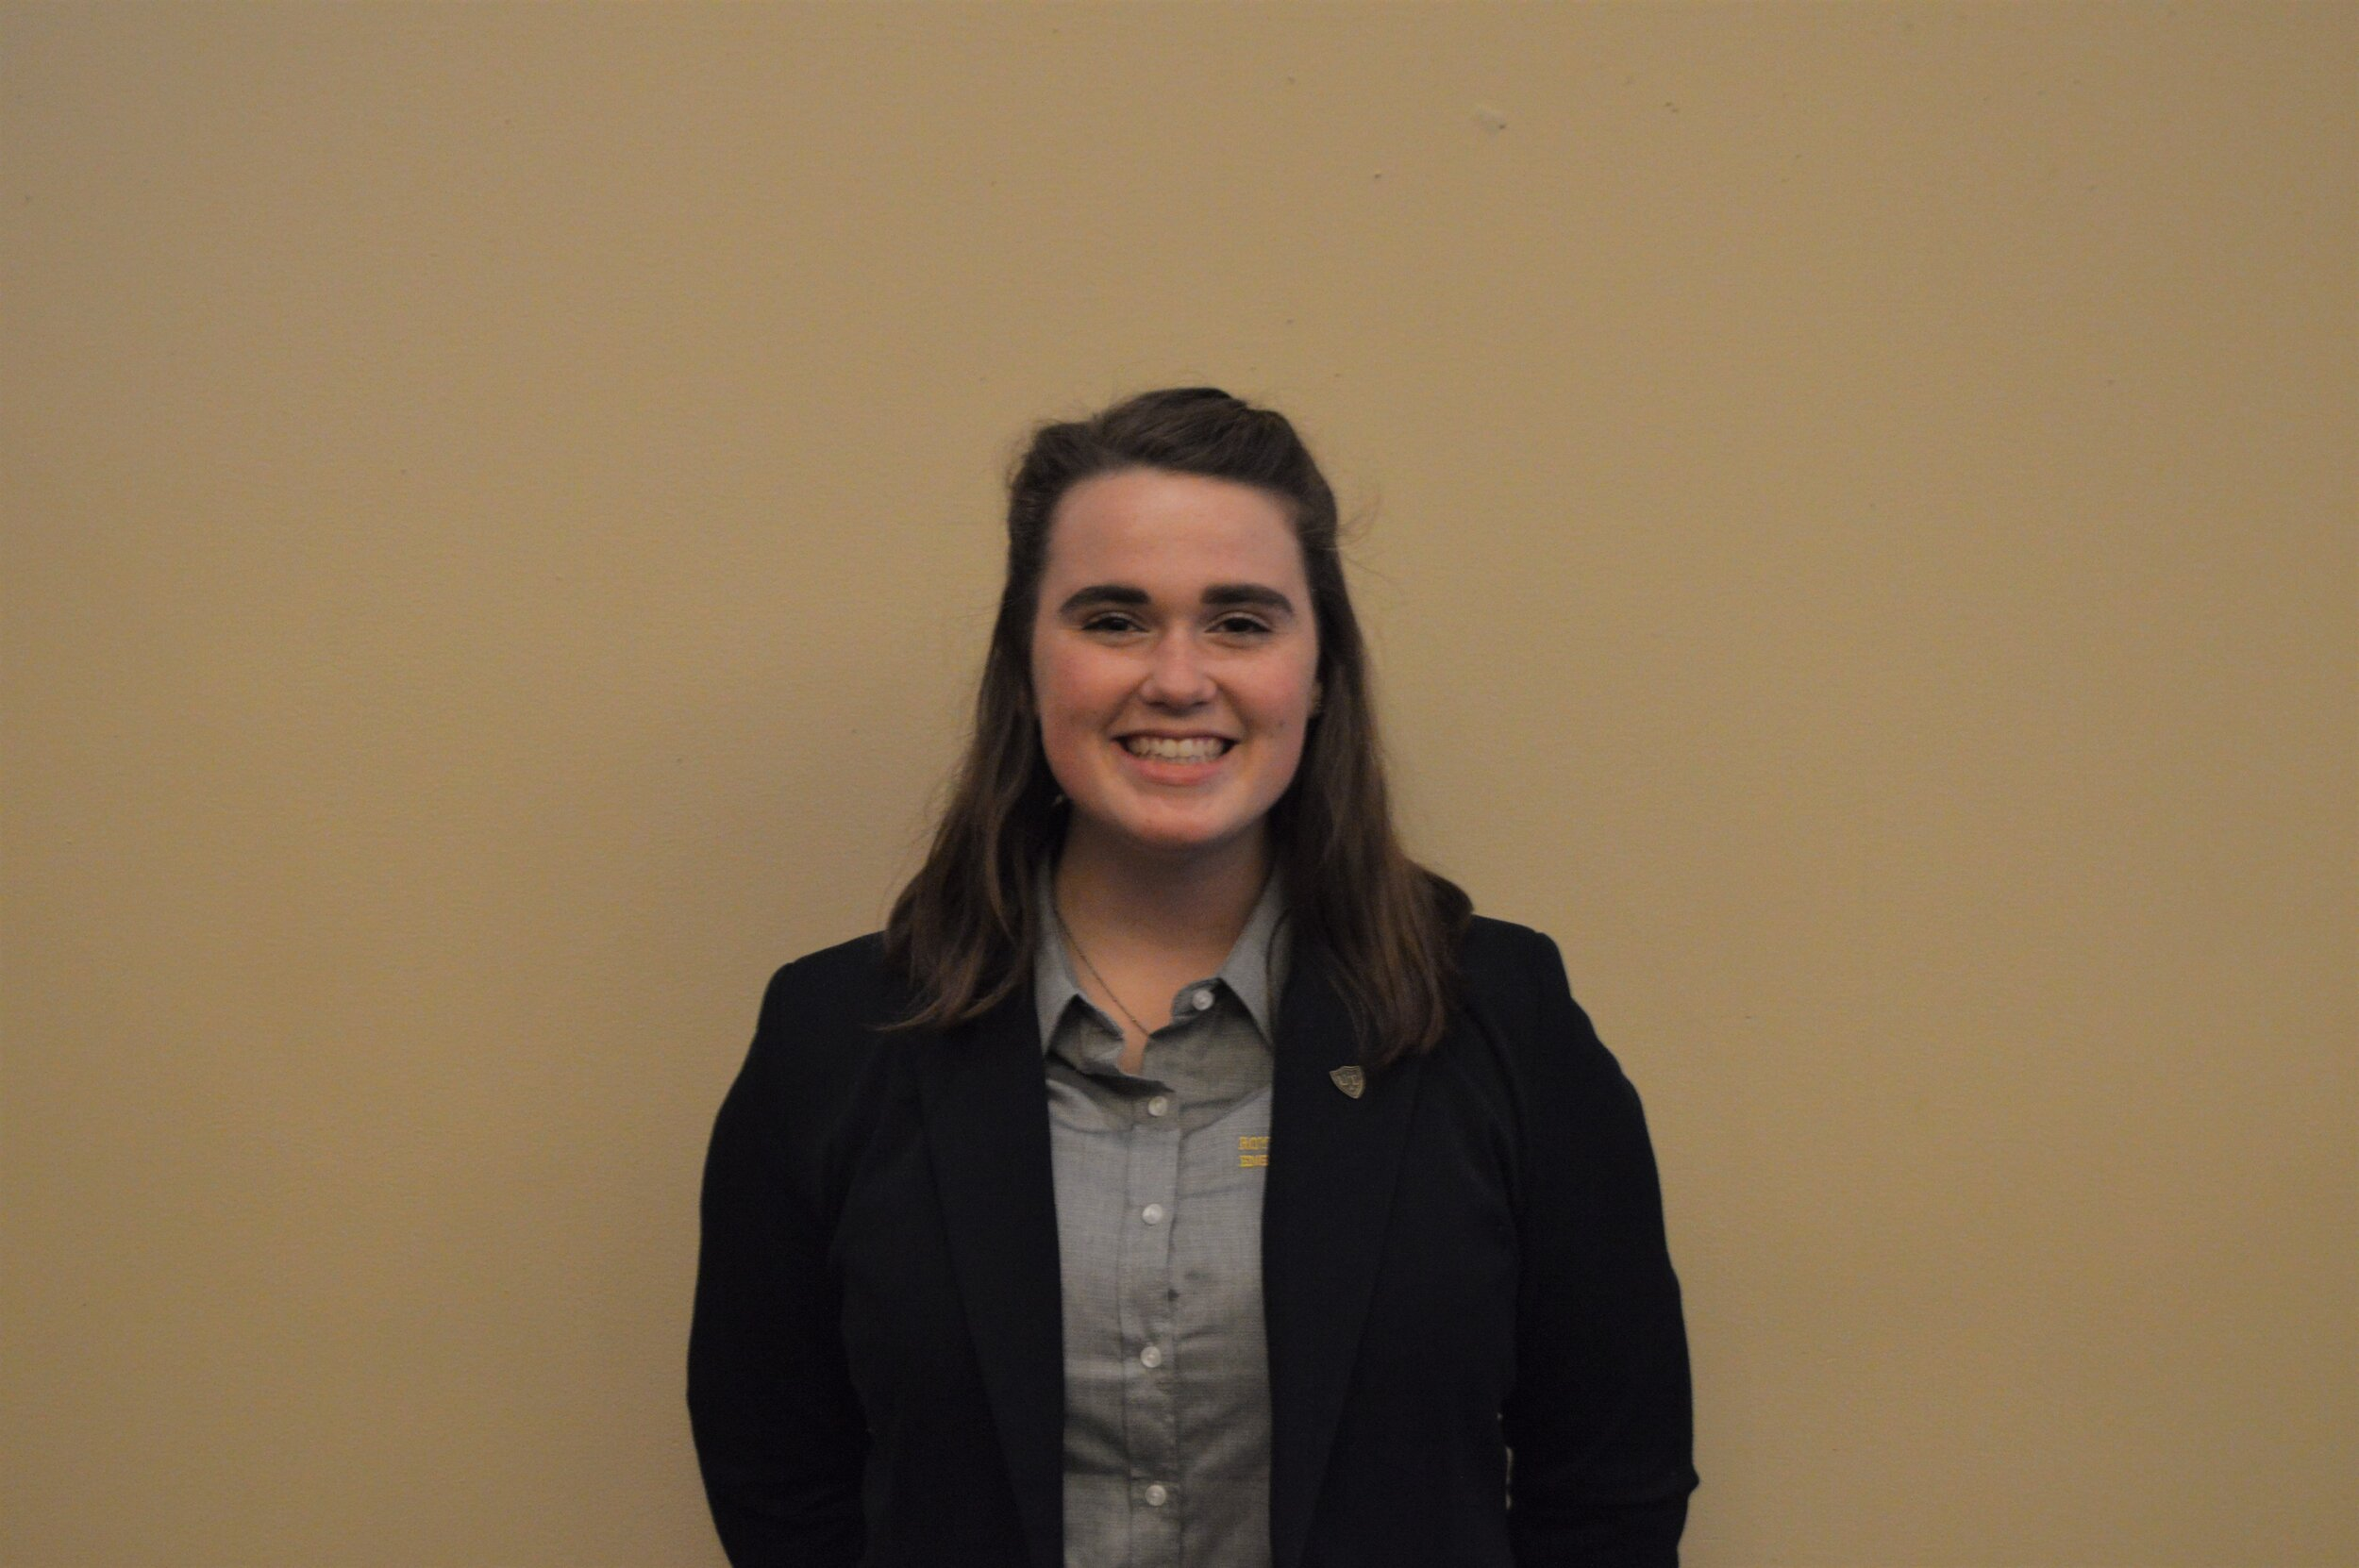 Anna Sophie Walker - Class and Major: Bioengineering '22UTSG Position: Elected Senator, Internal Affairs Committee ChairEmail: Anna.walker@rockets.utoledo.eduBiography: I am a third year bioengineering student from Bay Village, OH (suburb west of Cleveland). Outside of school, I am an avid outdoorswoman - I enjoy cycling, hiking, hammock camping, and kayaking! This past summer, I went on two different three-day-long bike-packing trips; the first was about 240 miles down the Ohio to Erie trail between Cleveland and Columbus, and the second was the entire 150 miles of the Great Allegheny Passage between Cumberland, MD and Pittsburgh, PA. When I'm not on my bike or out in the woods, I love spending my time trying new restaurants (my current favorite is a Cambodian restaurant in CLE, Phnom Penh) and wandering around museums with my friends! After graduation, I'm hoping to take a six-week hiatus before starting a job or master's program in bioengineering to bike across the continental US with my dad - there are currently multiple rail-to-trail projects ongoing with the idea of converting old railroads into a series of linkable bike trails that span across the US and hopefully, there will be enough of it completed in the next three years that we can make it all the way from the Atlantic to the Pacific!UTSG Committees: Campus Culture, Internal AffairsCampus Involvement: Roy and Marcia Armes Engineering Leadership Institute, Levis Leadership UT, CHAARG, Scott Hall Resident Advisor, Presidential AmbassadorsOn Campus Goals: I would like to hear the student voice of UToledo more. UTSG has done a better job over the past year of reaching out to more students than in previous eras, but there are still many UToledo students who have ideas to share or things that they would like to see changed who don't know who UTSG is or how we advocate for improvements in the student experience. By improving outreach, encouraging students to speak up by providing and advertising (better adverti